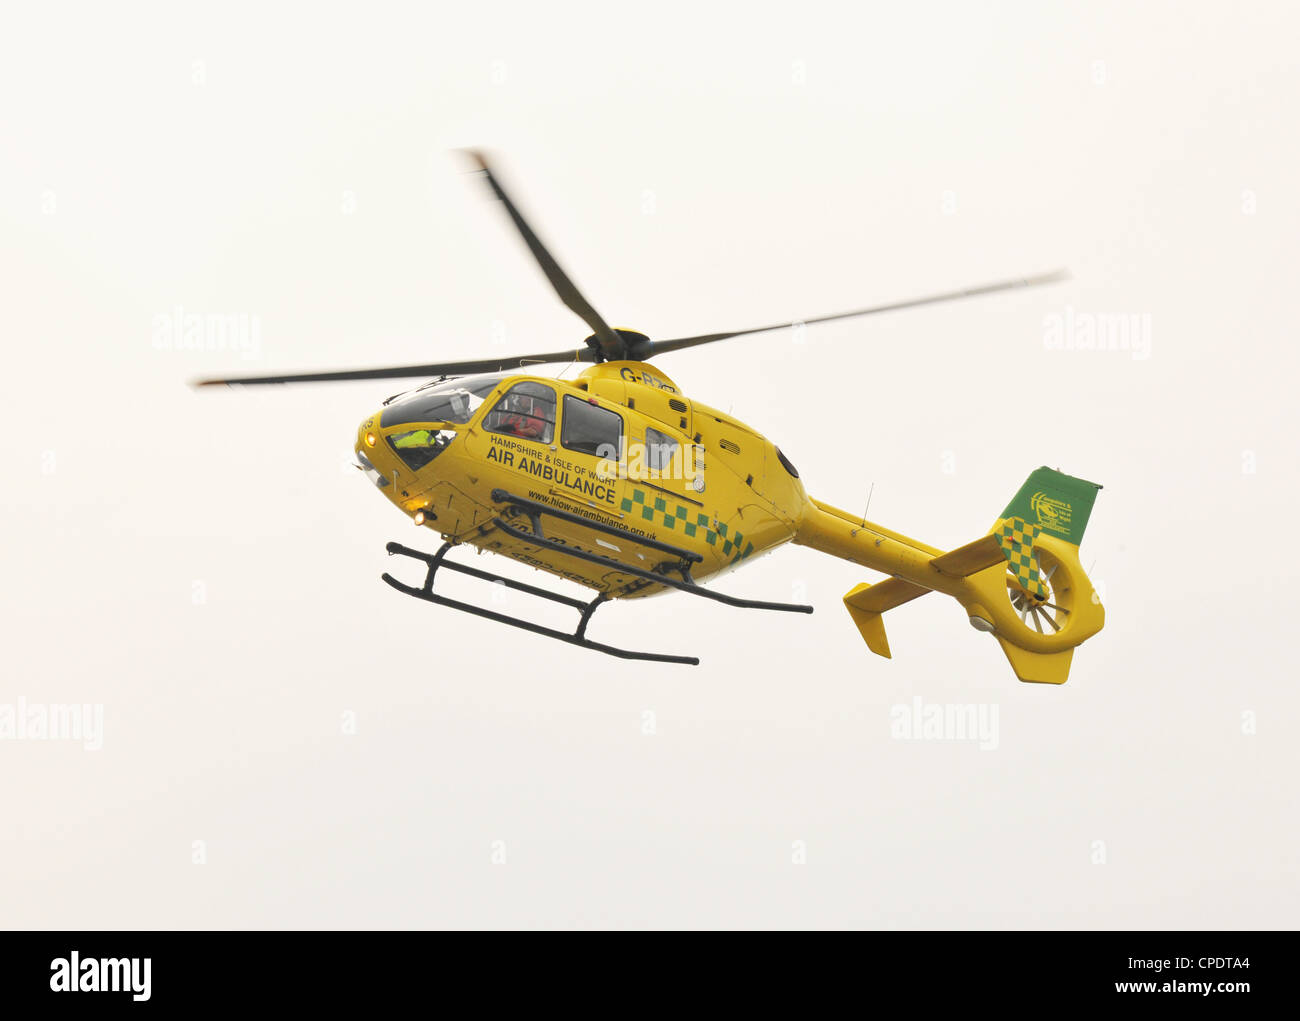 Hampshire May 2012. Hampshire and Isle of Wight Air Ambulance in flight on a dull day. - Stock Image